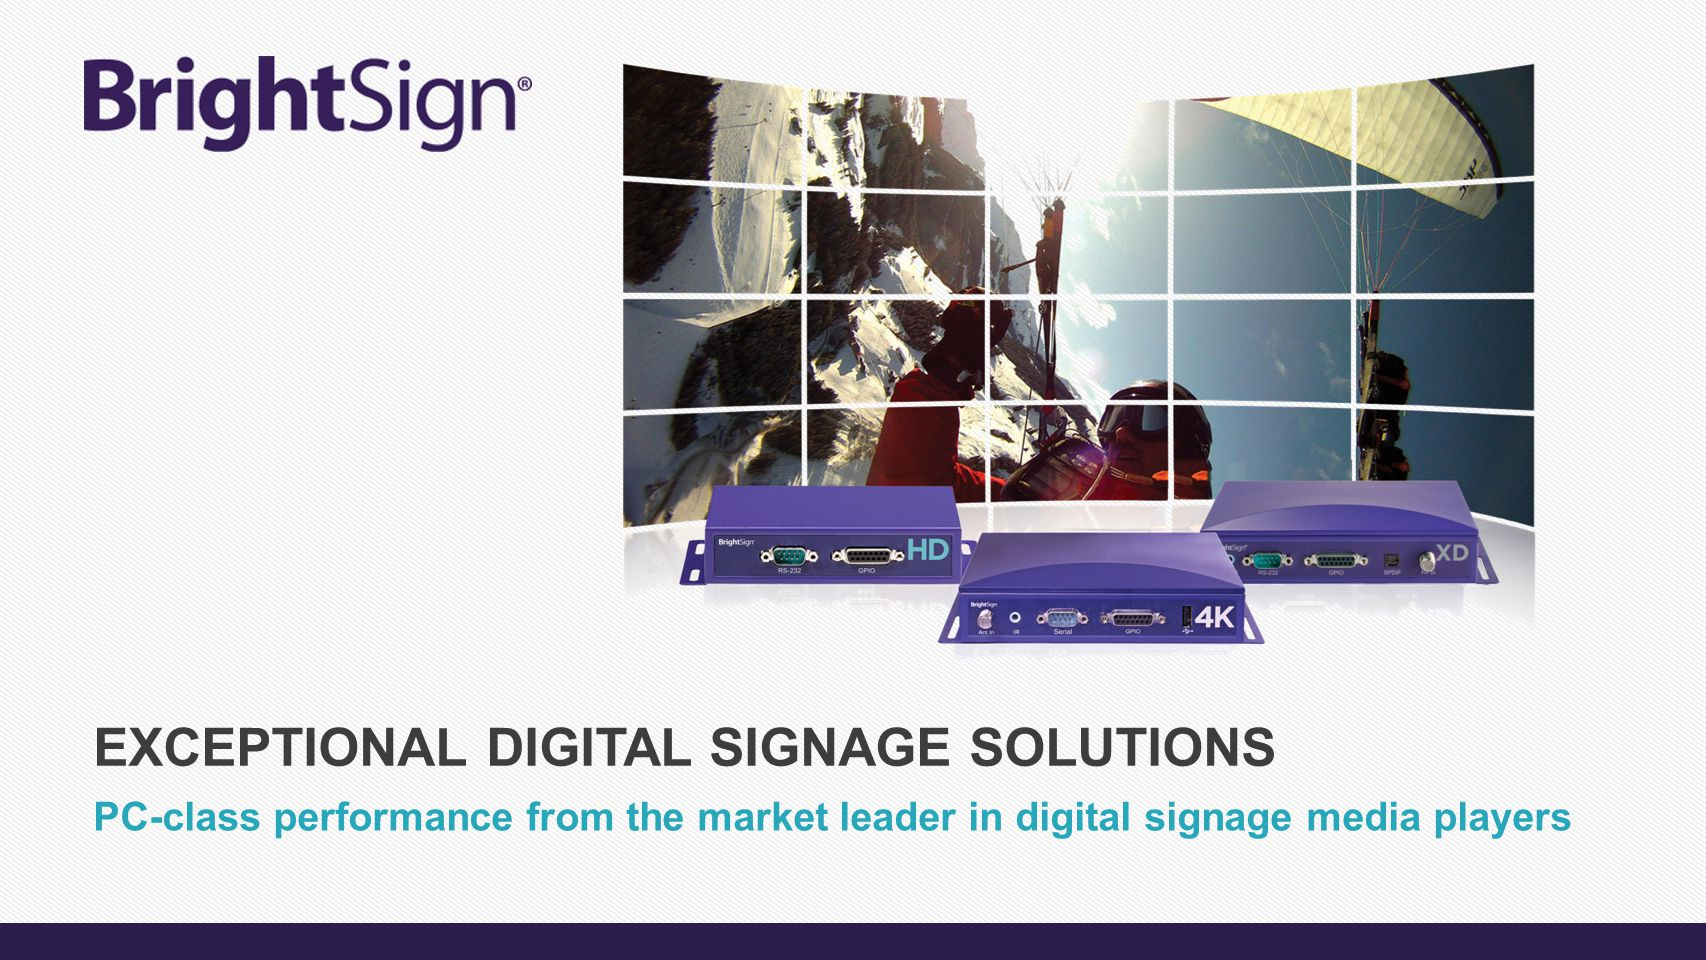 BRIGHTSIGN AU320 Commercial Audio Distribution Delivers flawless music and messaging playback using intuitive playlists and scheduling.